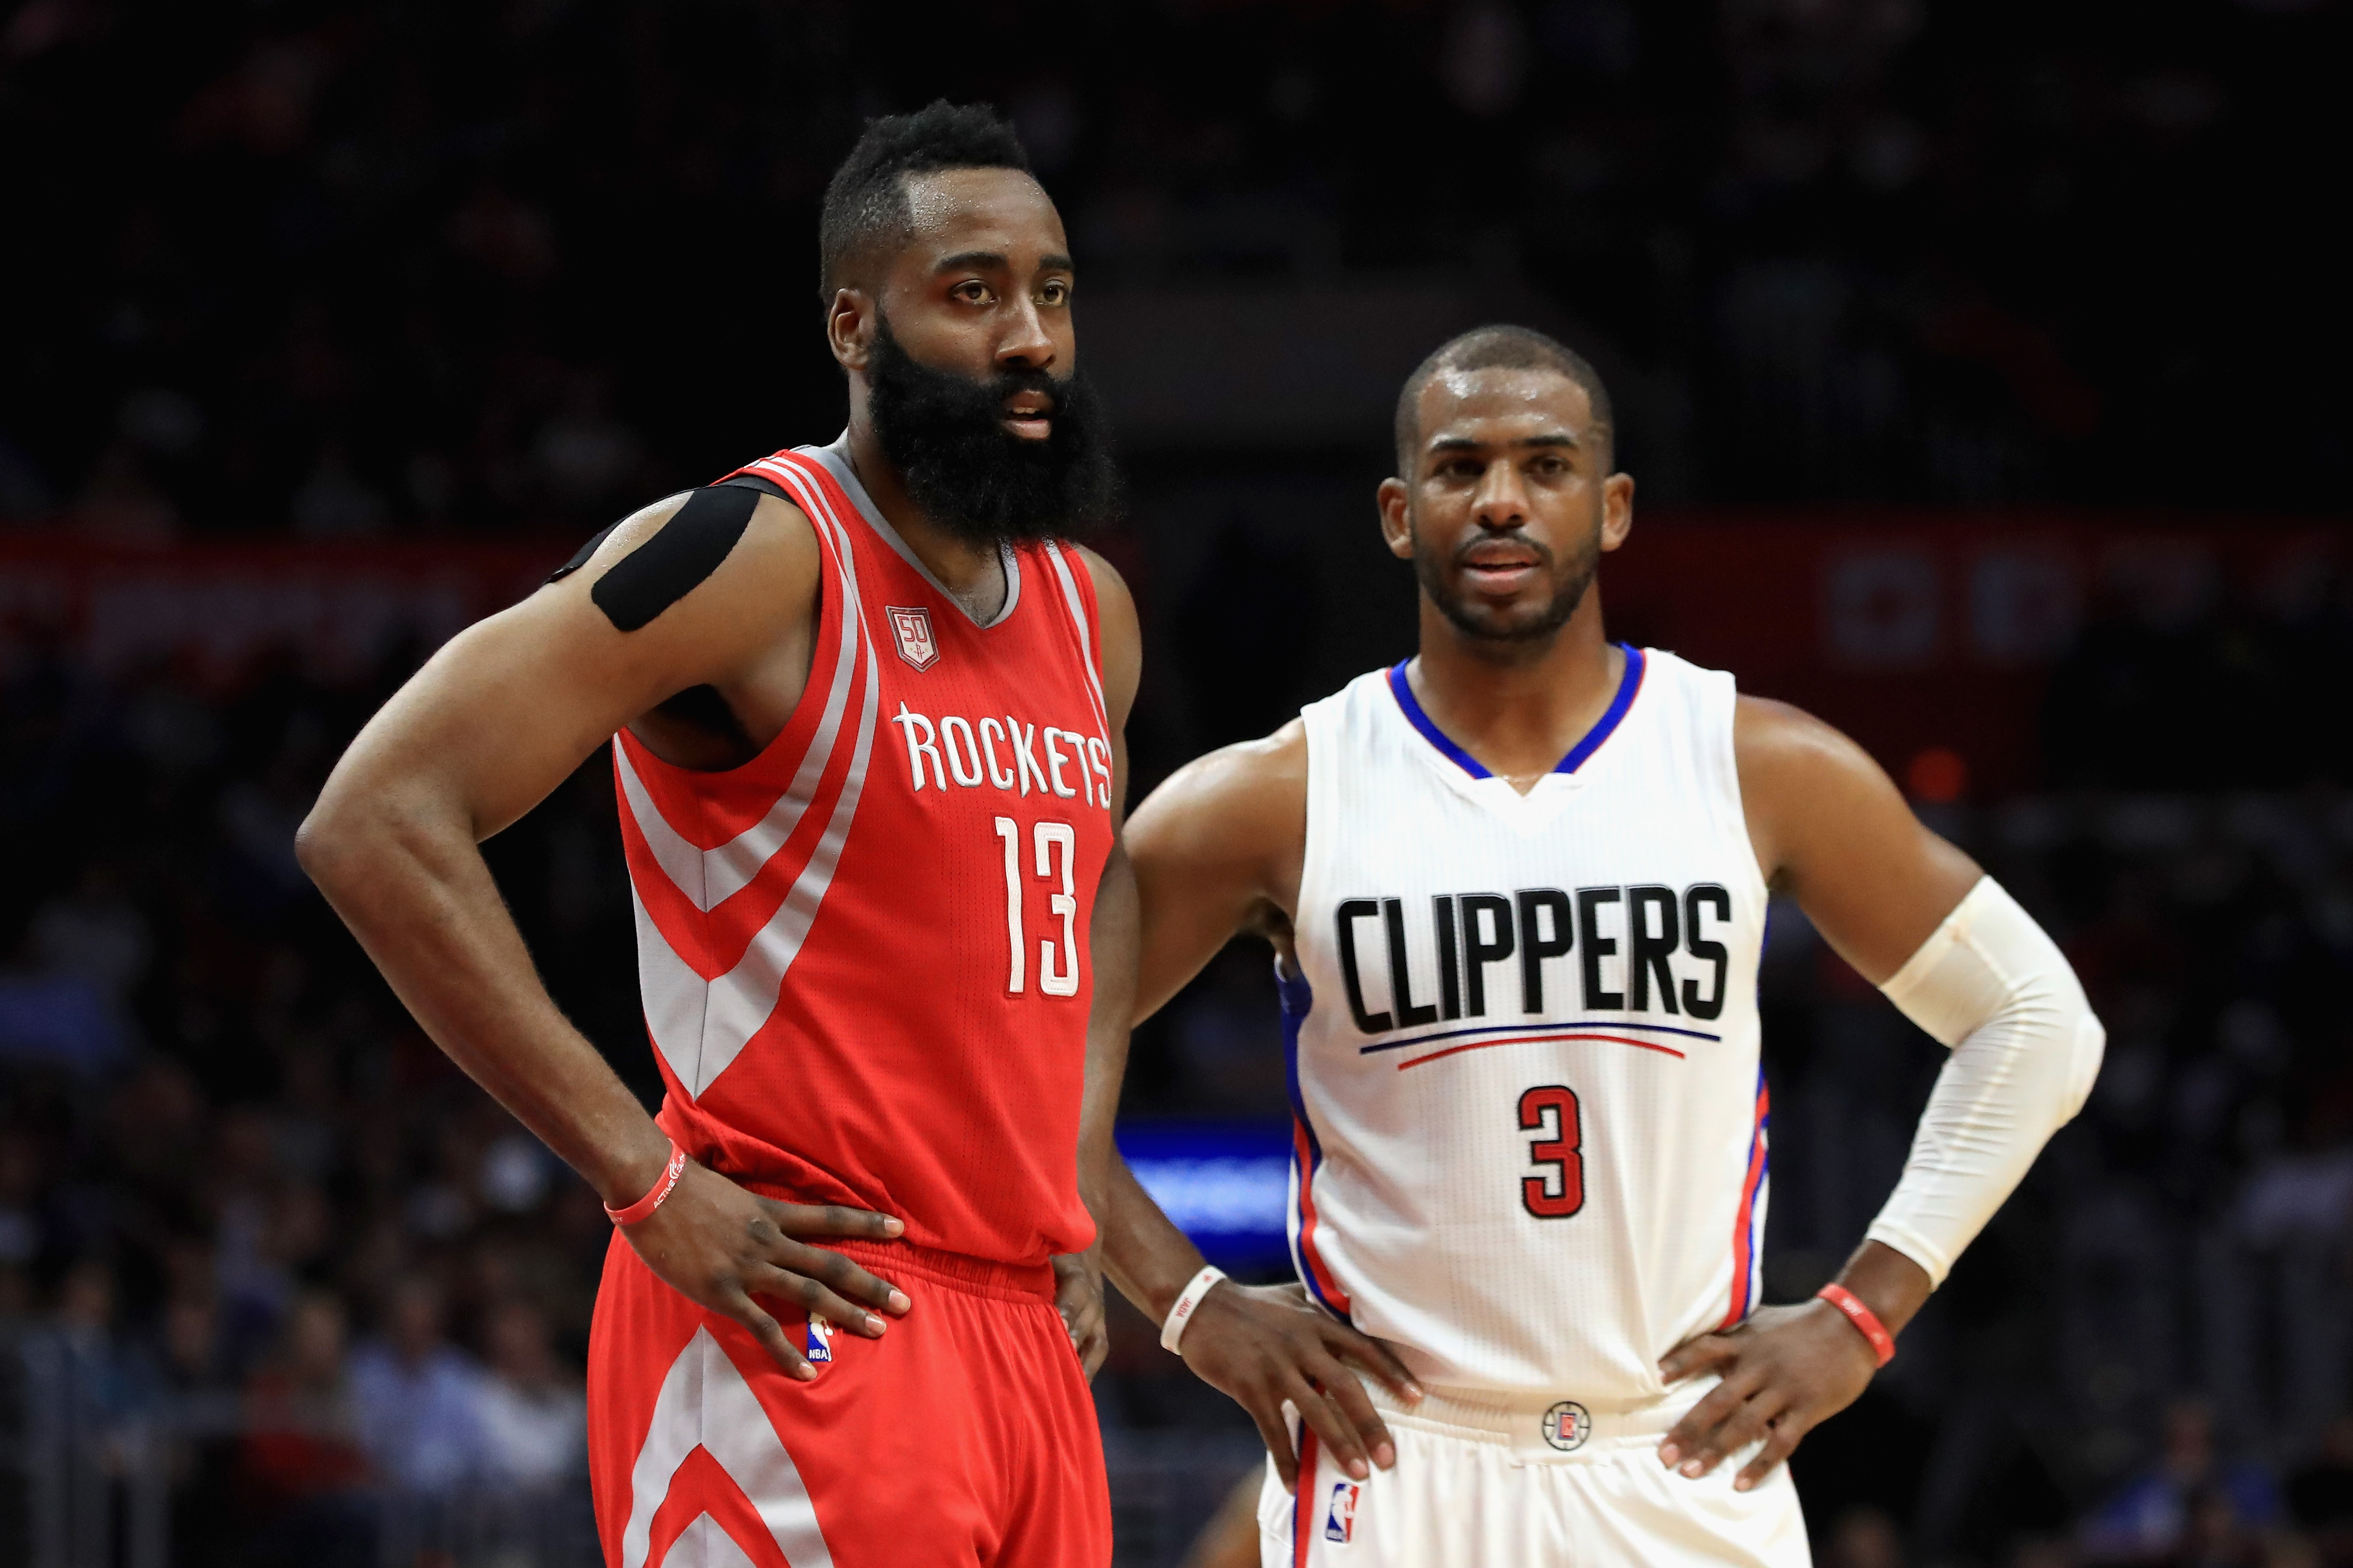 667057332-houston-rockets-v-los-angeles-clippers.jpg